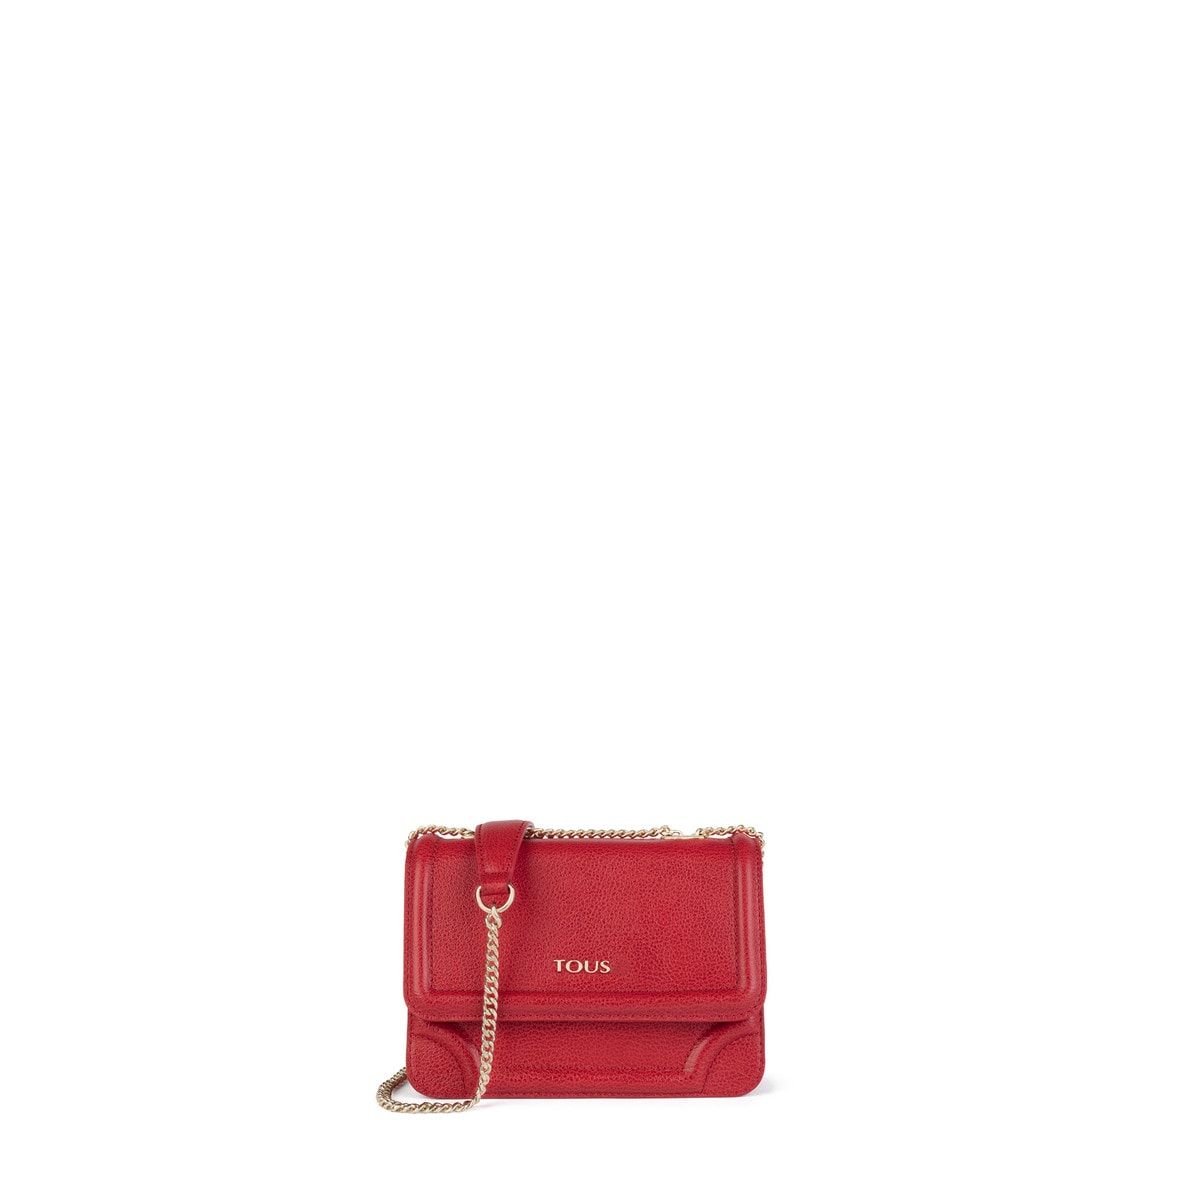 98d228bdbf1d Small red Leather Obraian Crossbody bag - Tous Site US